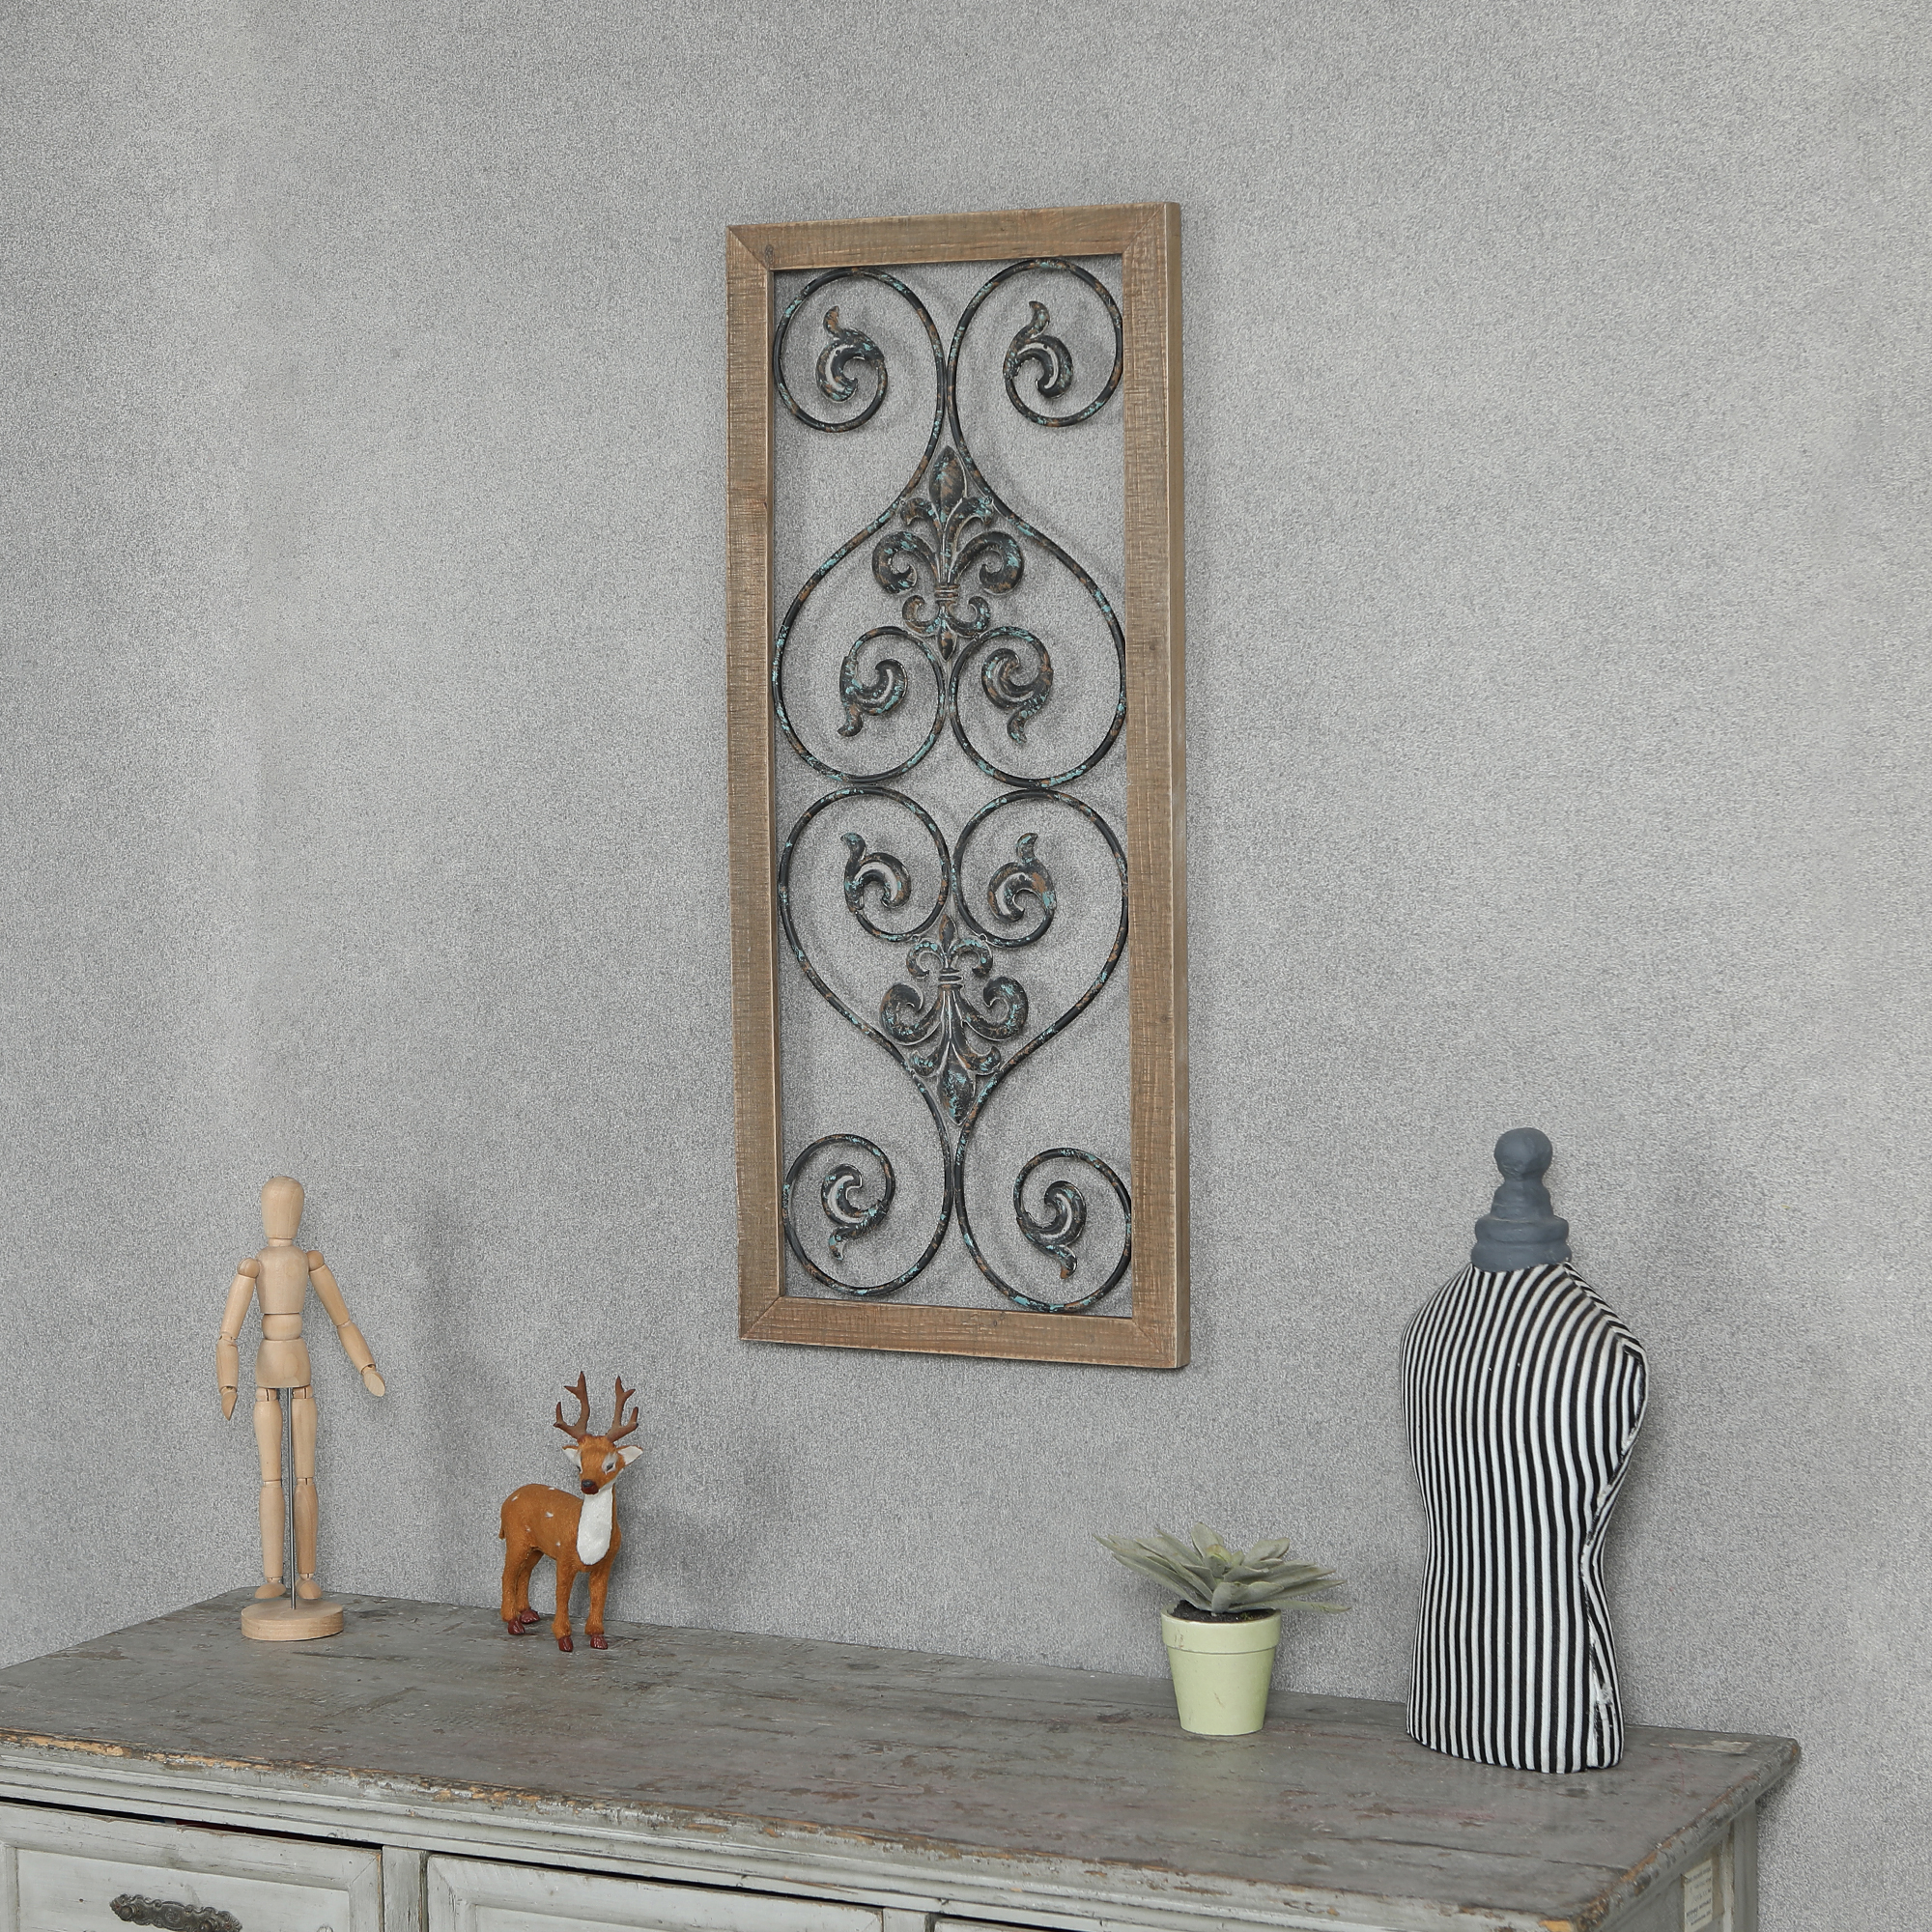 Rectangular Wood And Metal Scroll Wall Decor Intended For Popular Rectangular Metal Wall Décor (View 20 of 20)